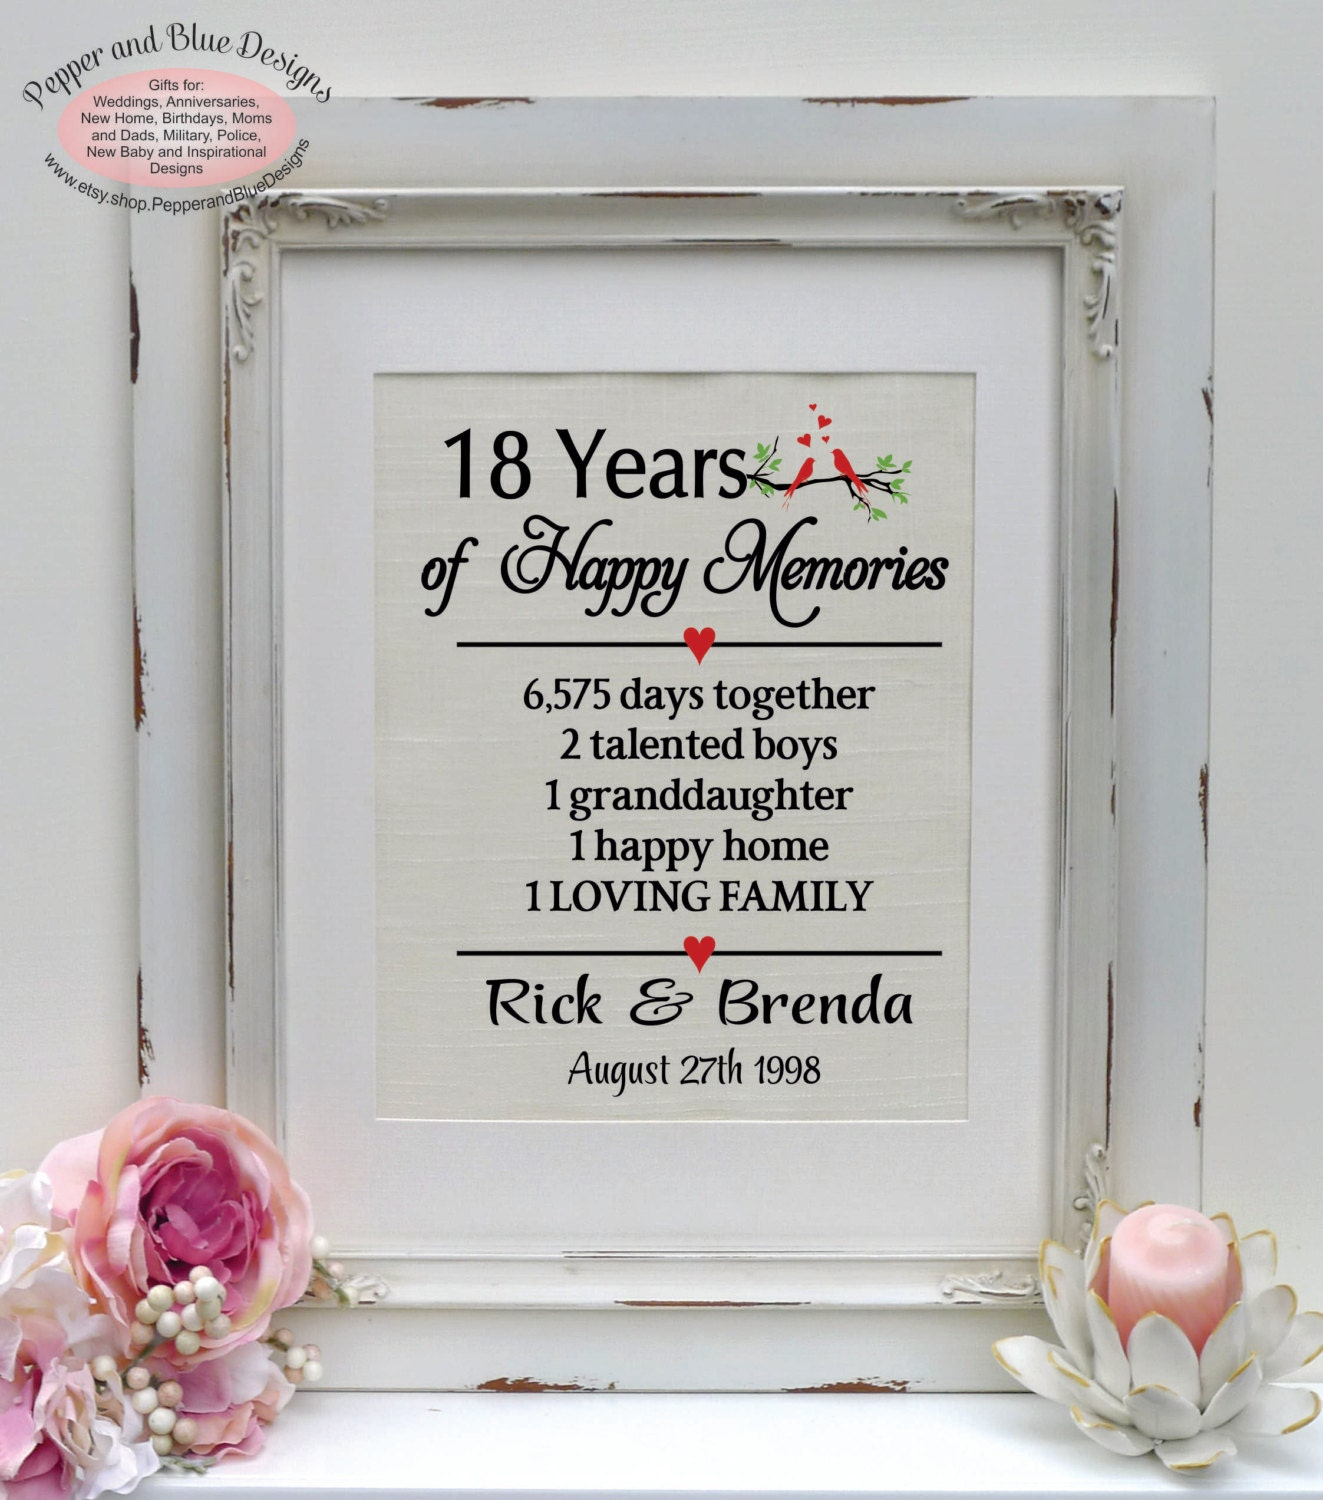 Wedding Anniversary Gifts By Year: 18th Wedding Anniversary Gifts 18 Years By